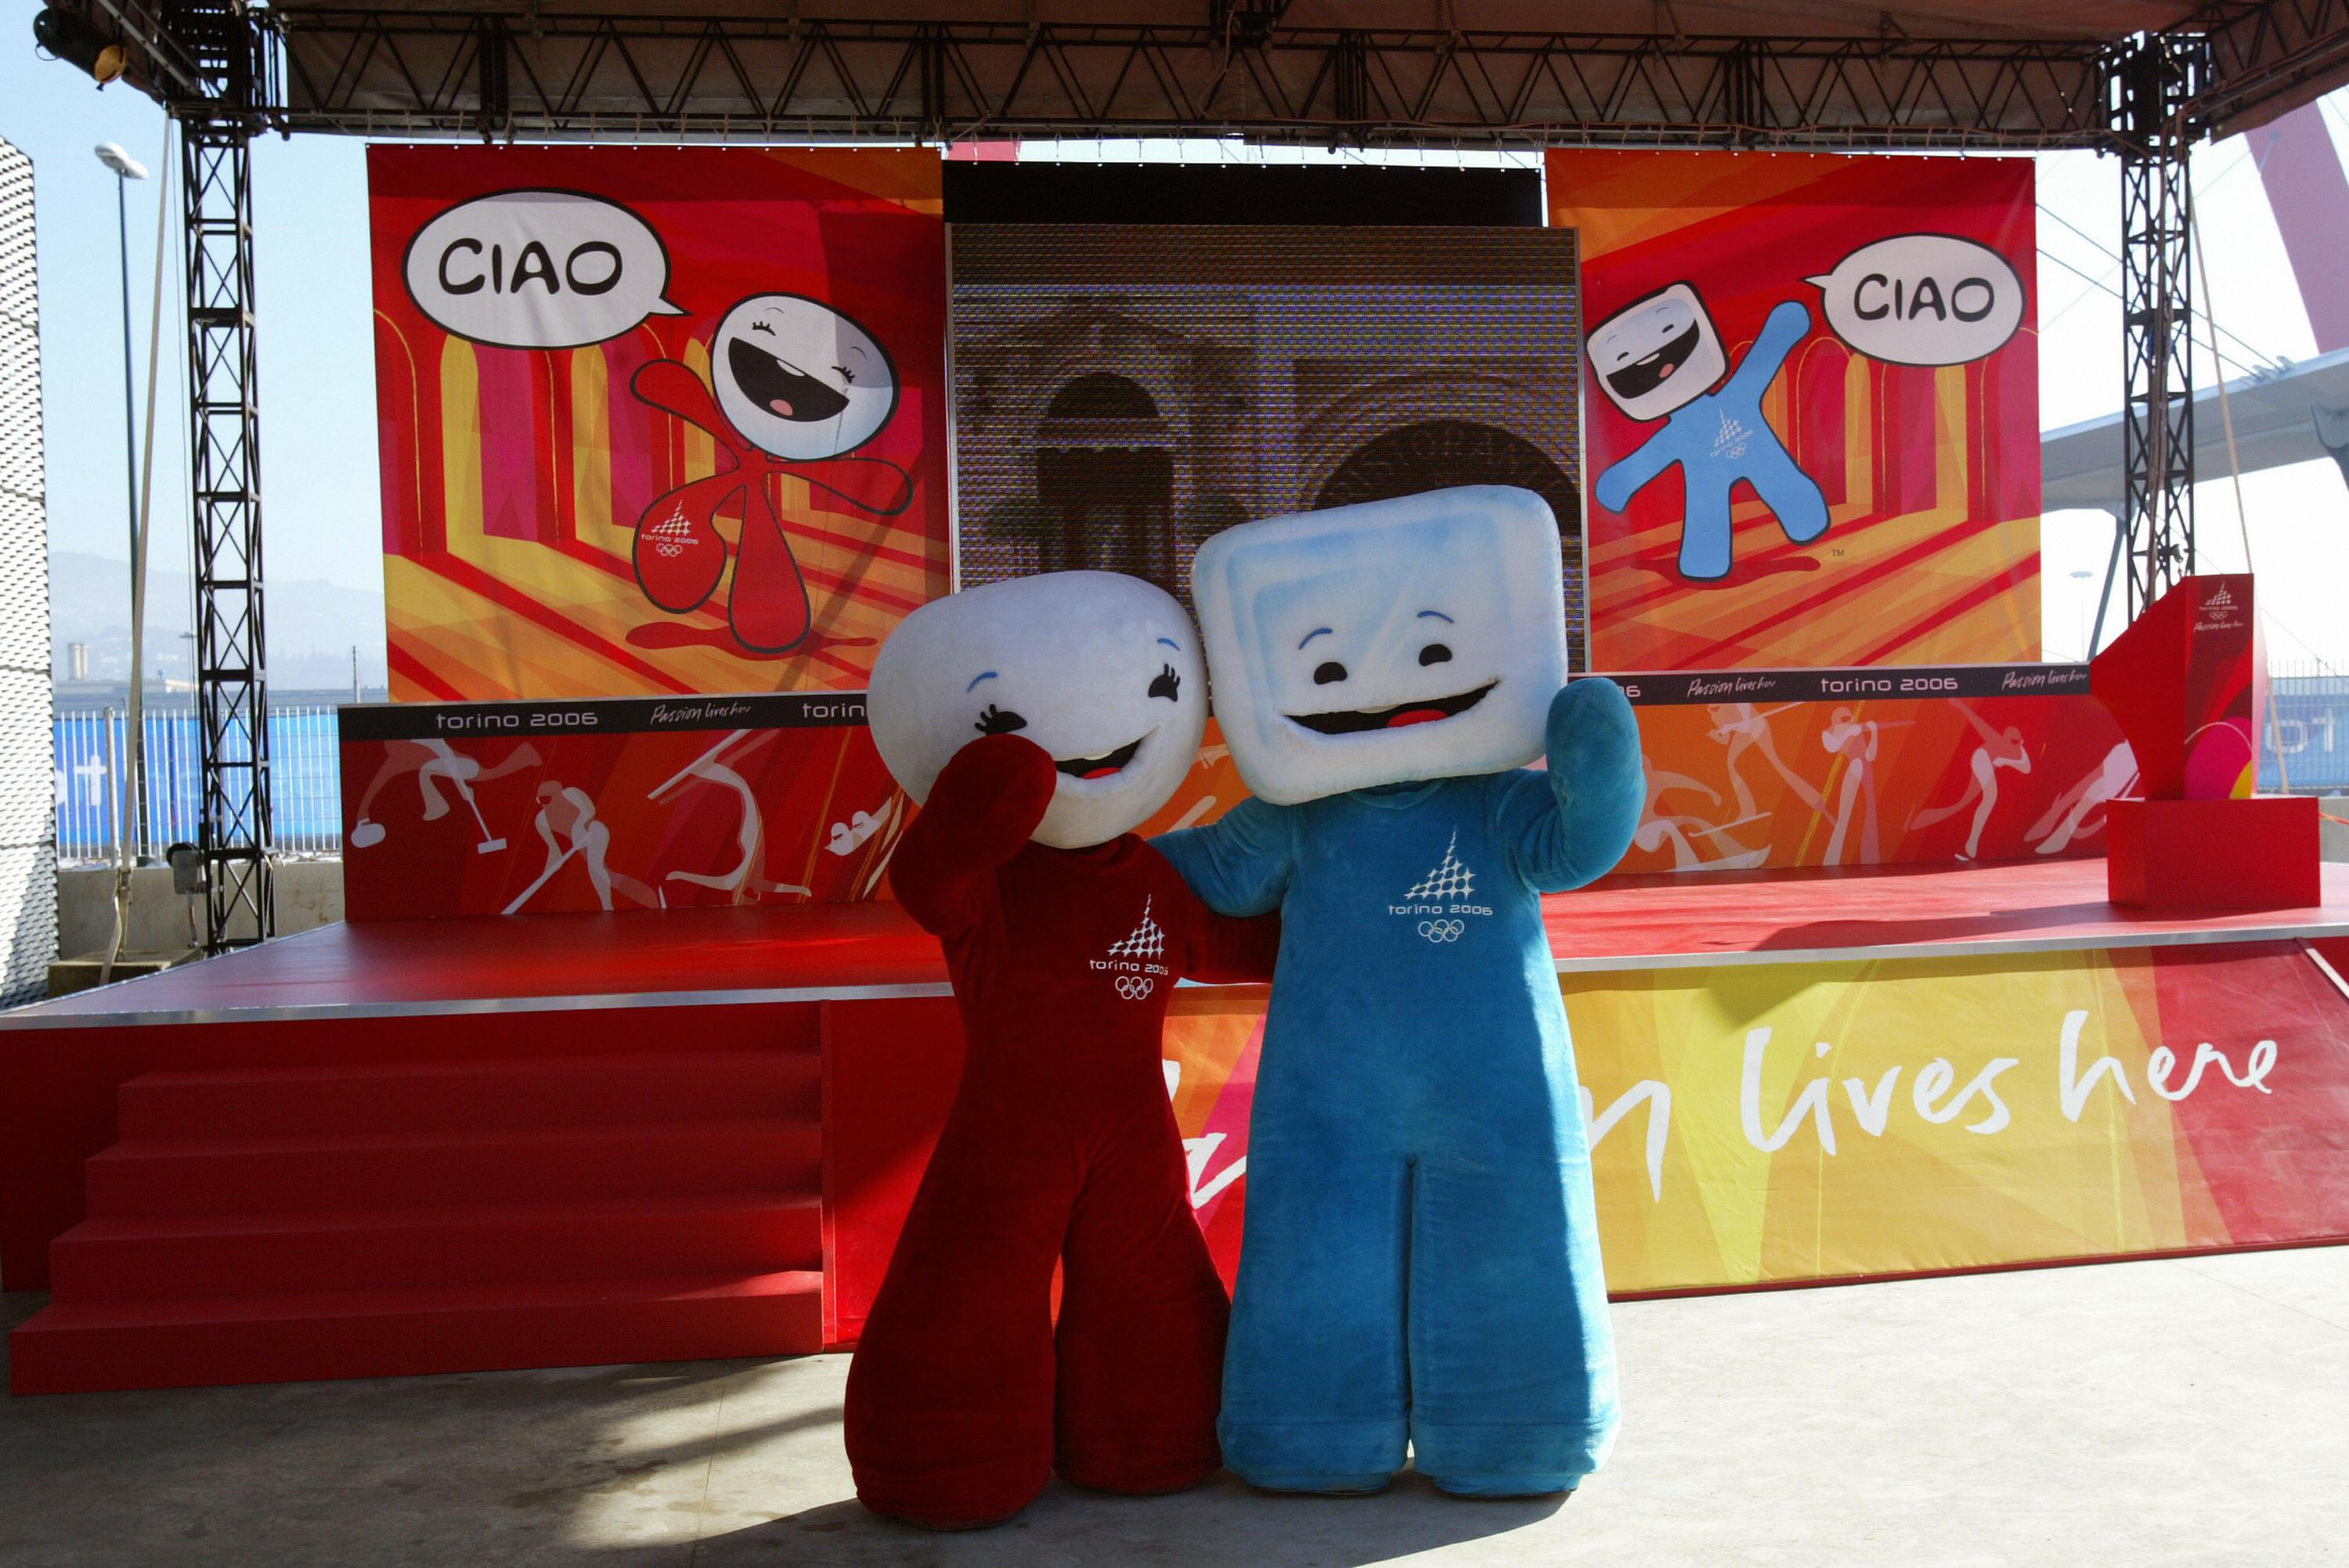 Turin, ITALY:  2006 Turin Winter Olympic mascots, snowball called Neve and her ice cube Gliz are pictured during the opening ceremony of the three Olympic Villages of Torino 2006, 31 January 2006.  AFP PHOTO  (Photo credit should read /AFP/Getty Images)